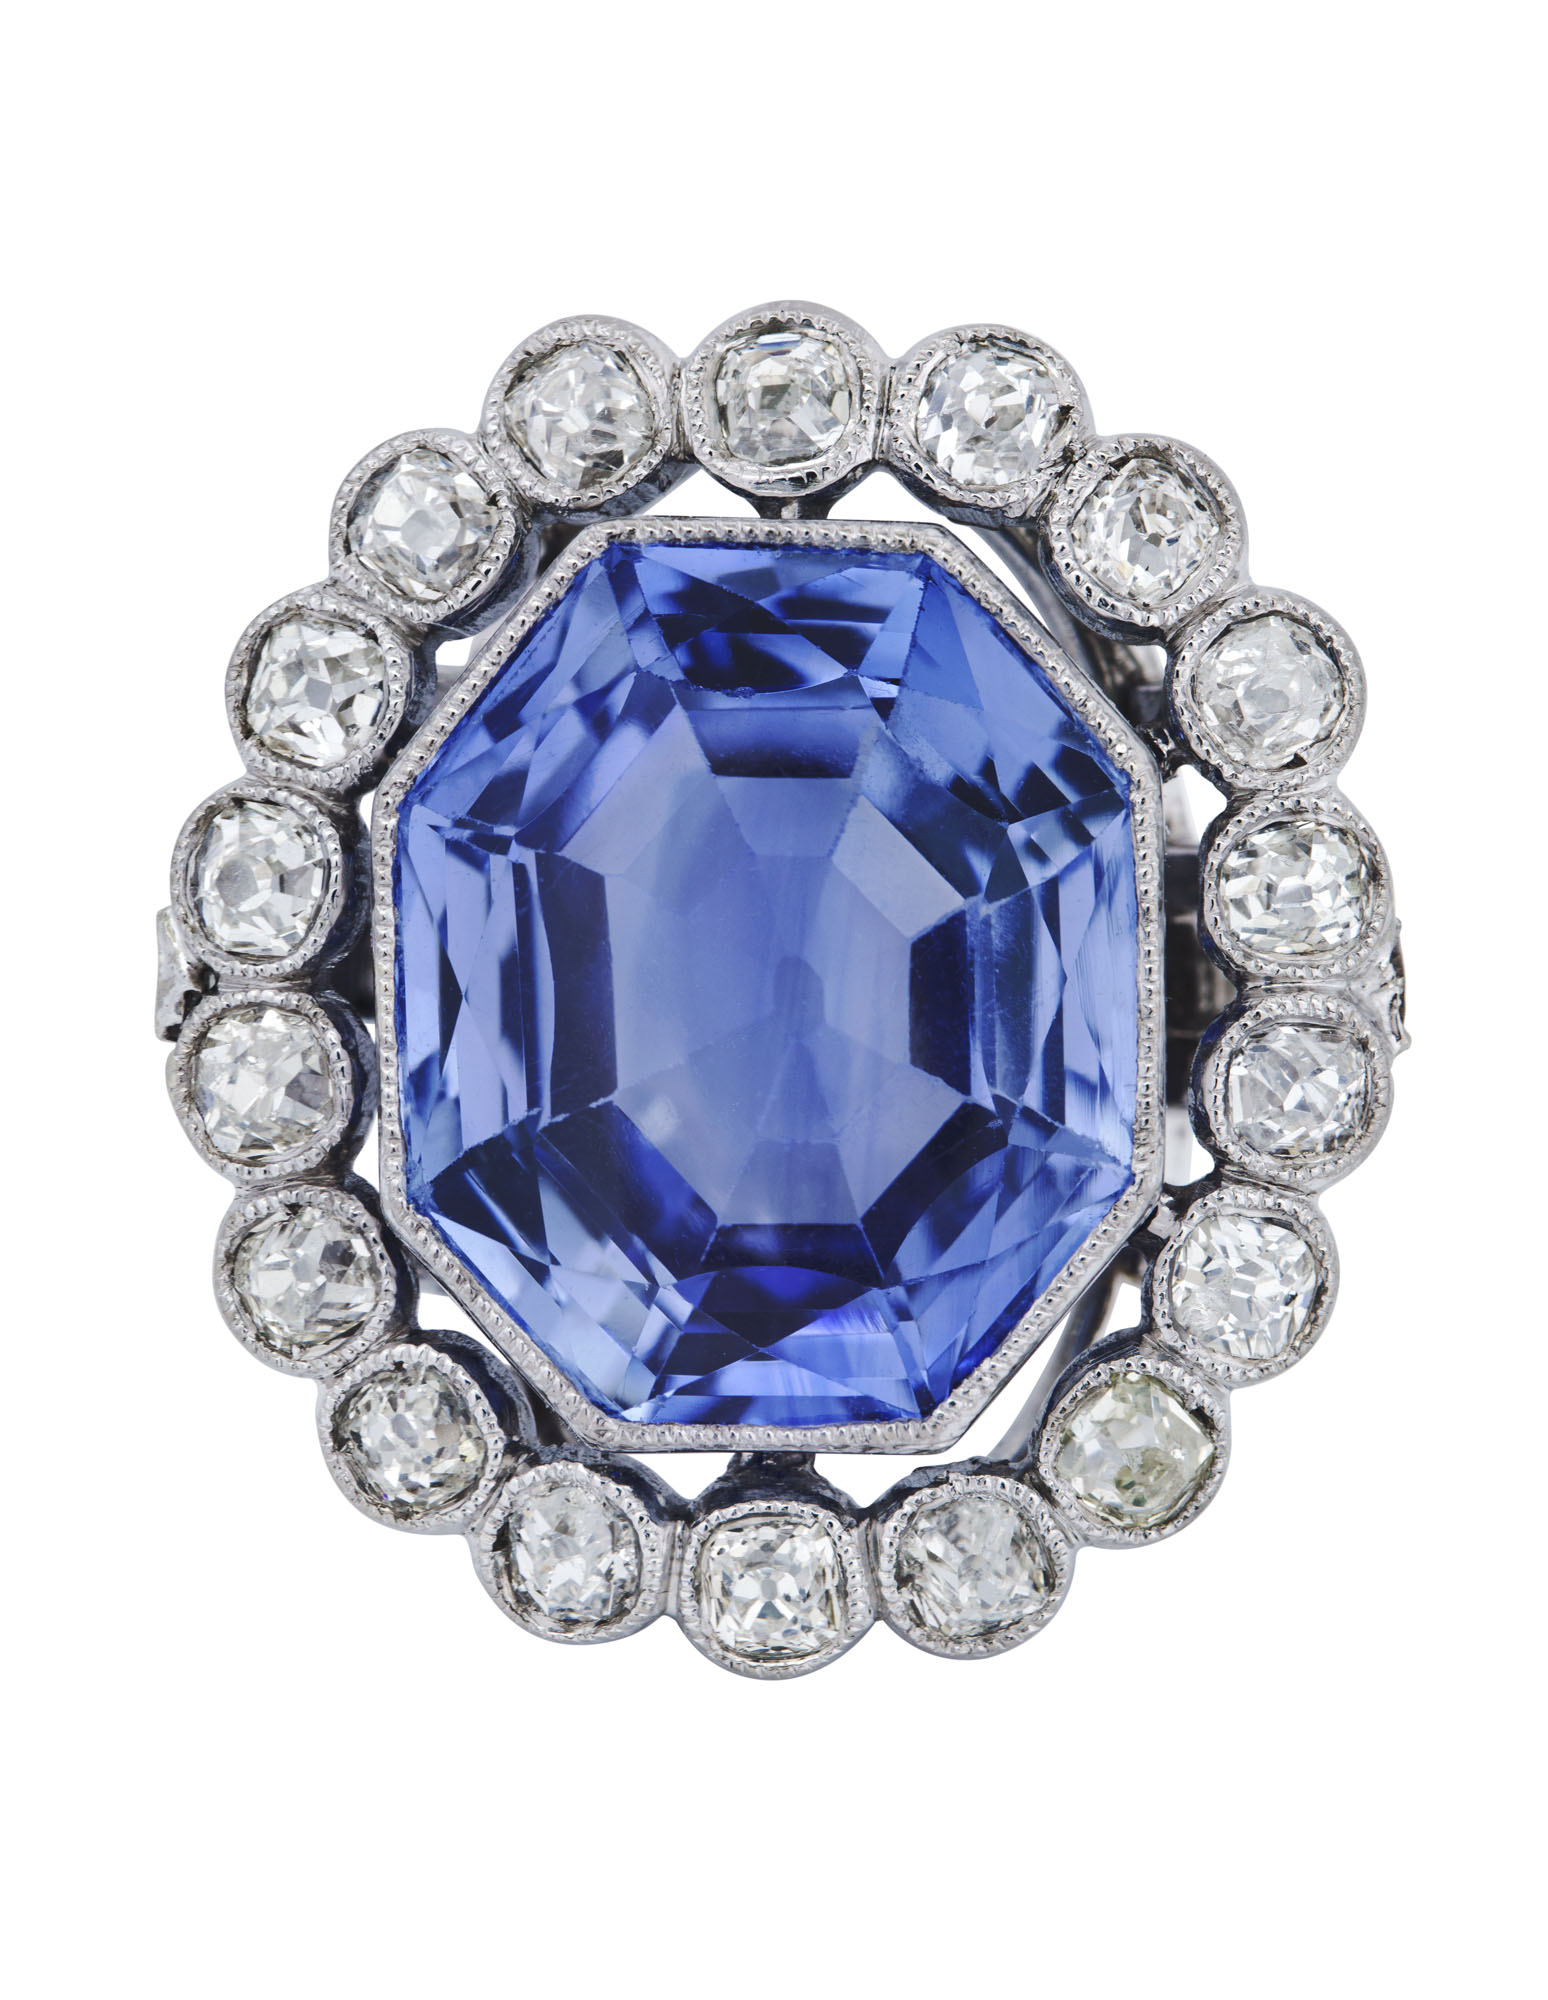 EARLY 19TH CENTURY SAPPHIRE AND DIAMOND RING